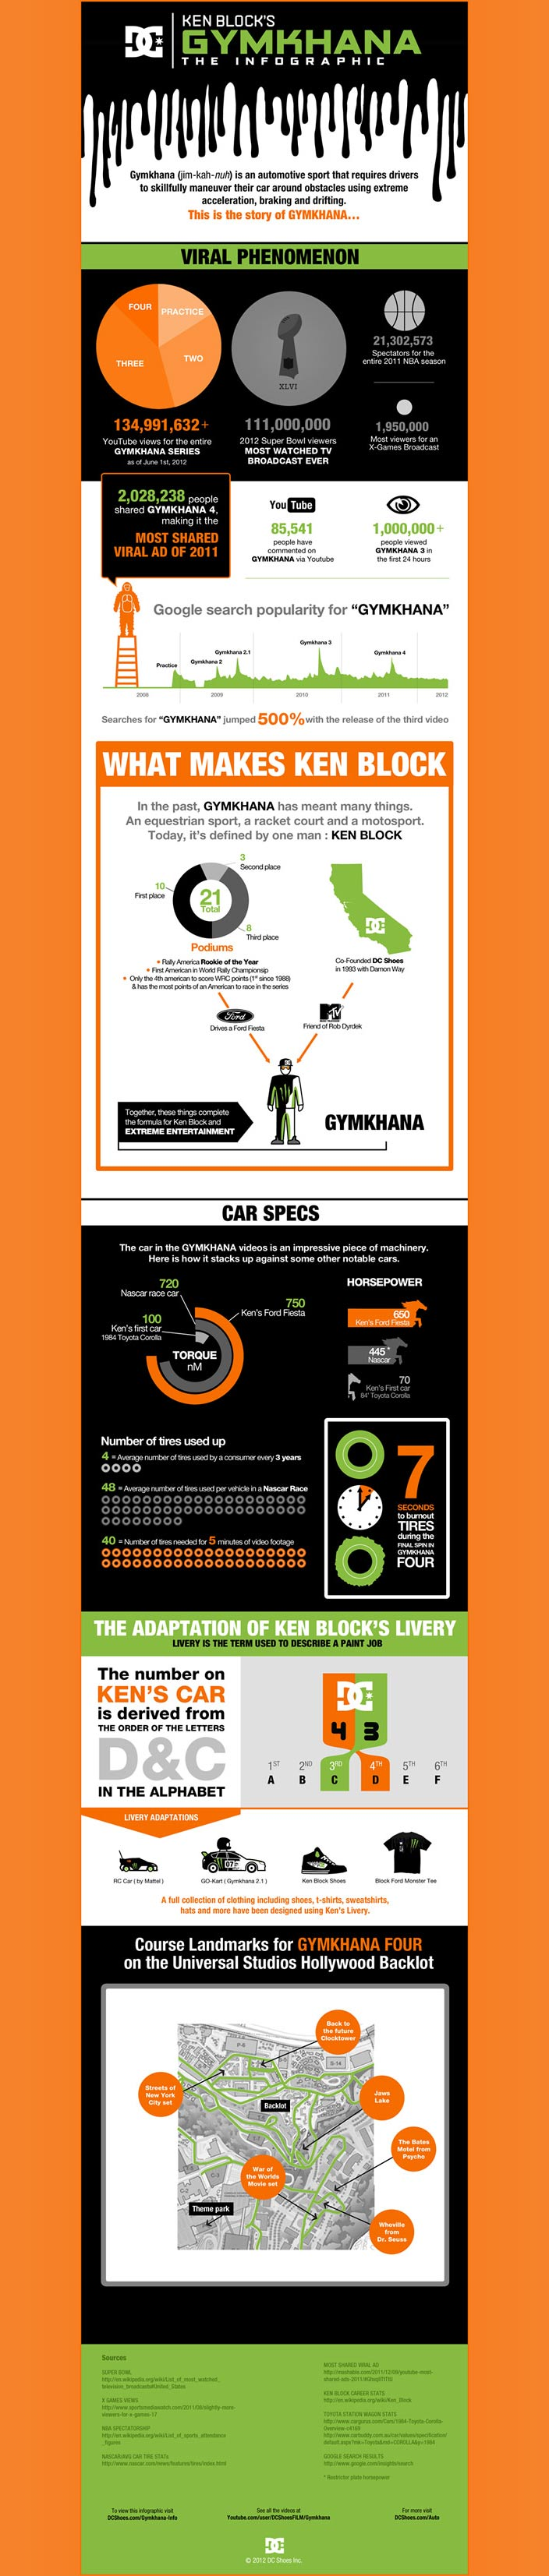 dc shoes gymkhana infographic The Accidental Hero   An interview with Ken Block